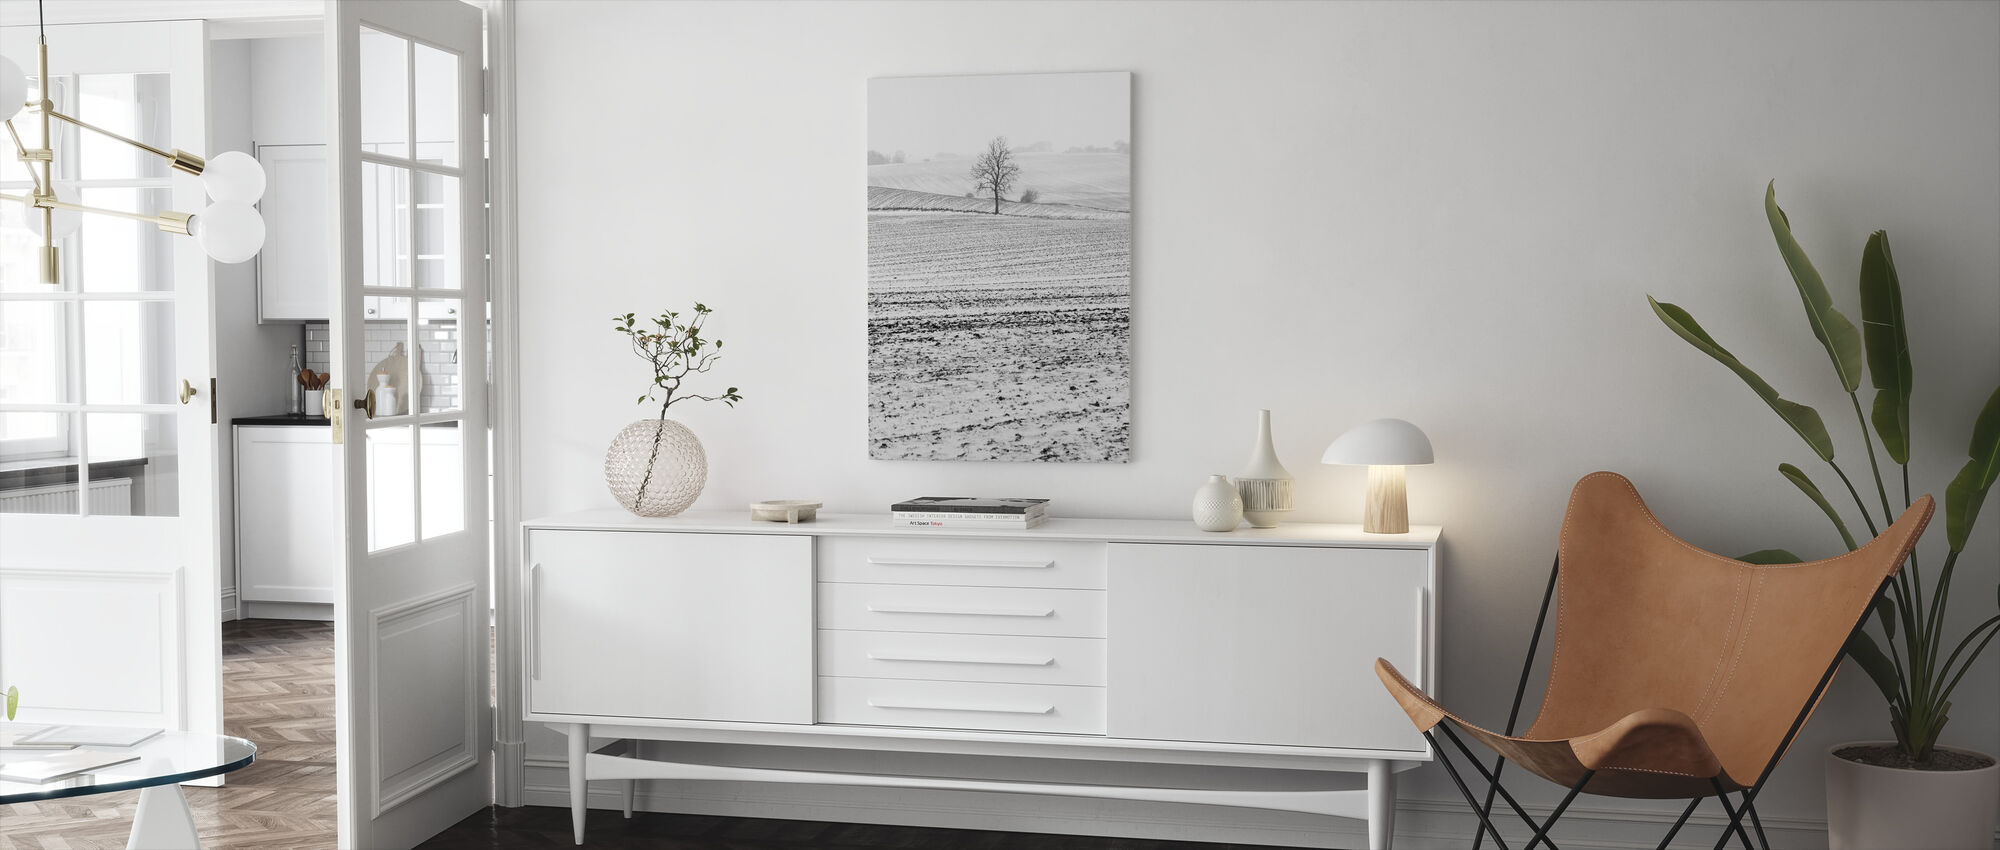 Fields in Anderslöv, Sweden - Canvas print - Living Room